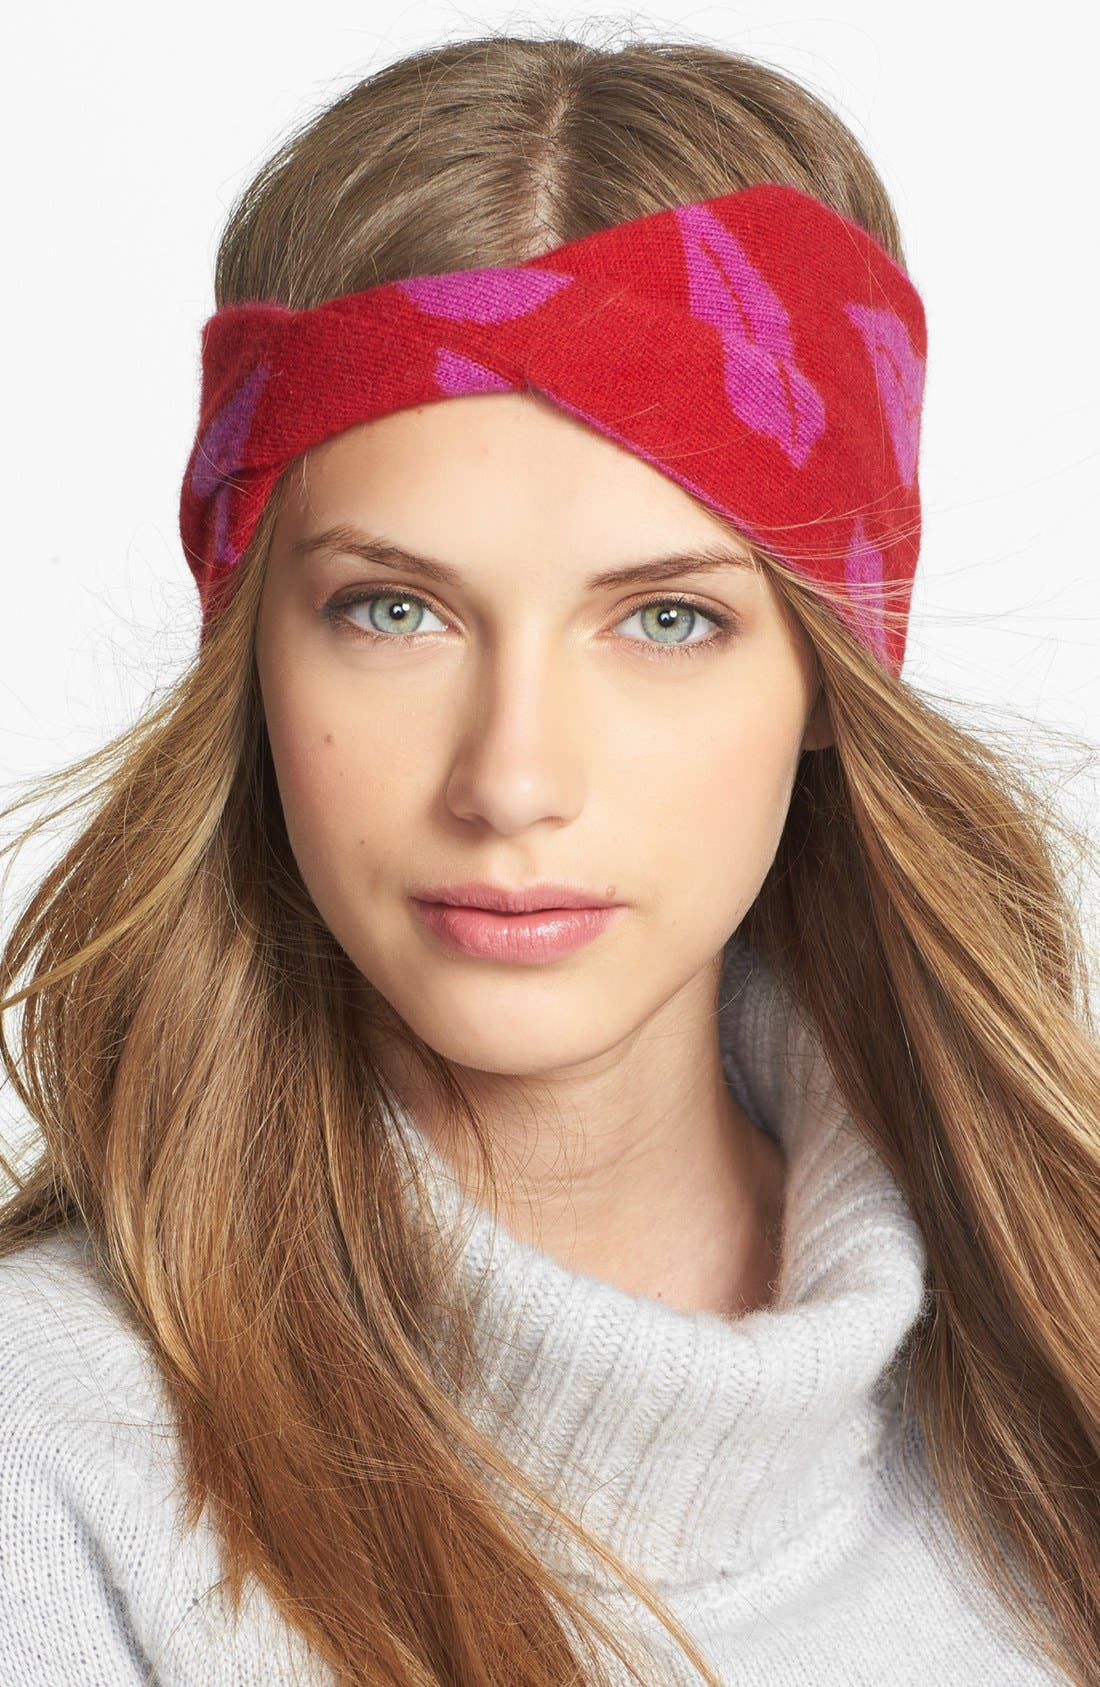 Alternate Image 1 Selected - Diane von Furstenberg 'Chloe - Iconic Lips' Head Wrap